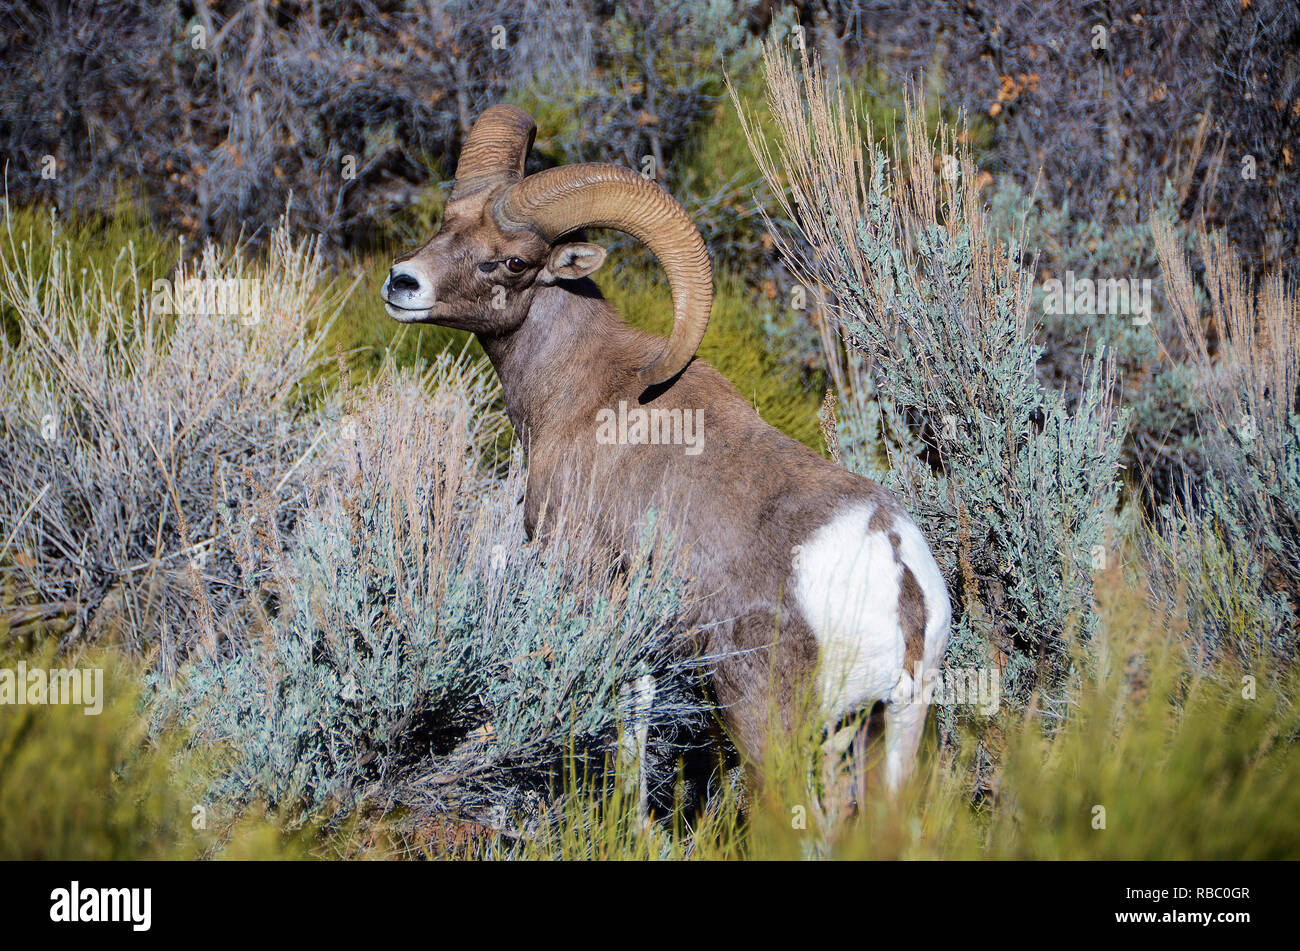 Rocky Mountain Big Horn sheep in Zions National Park, Utah. - Stock Image